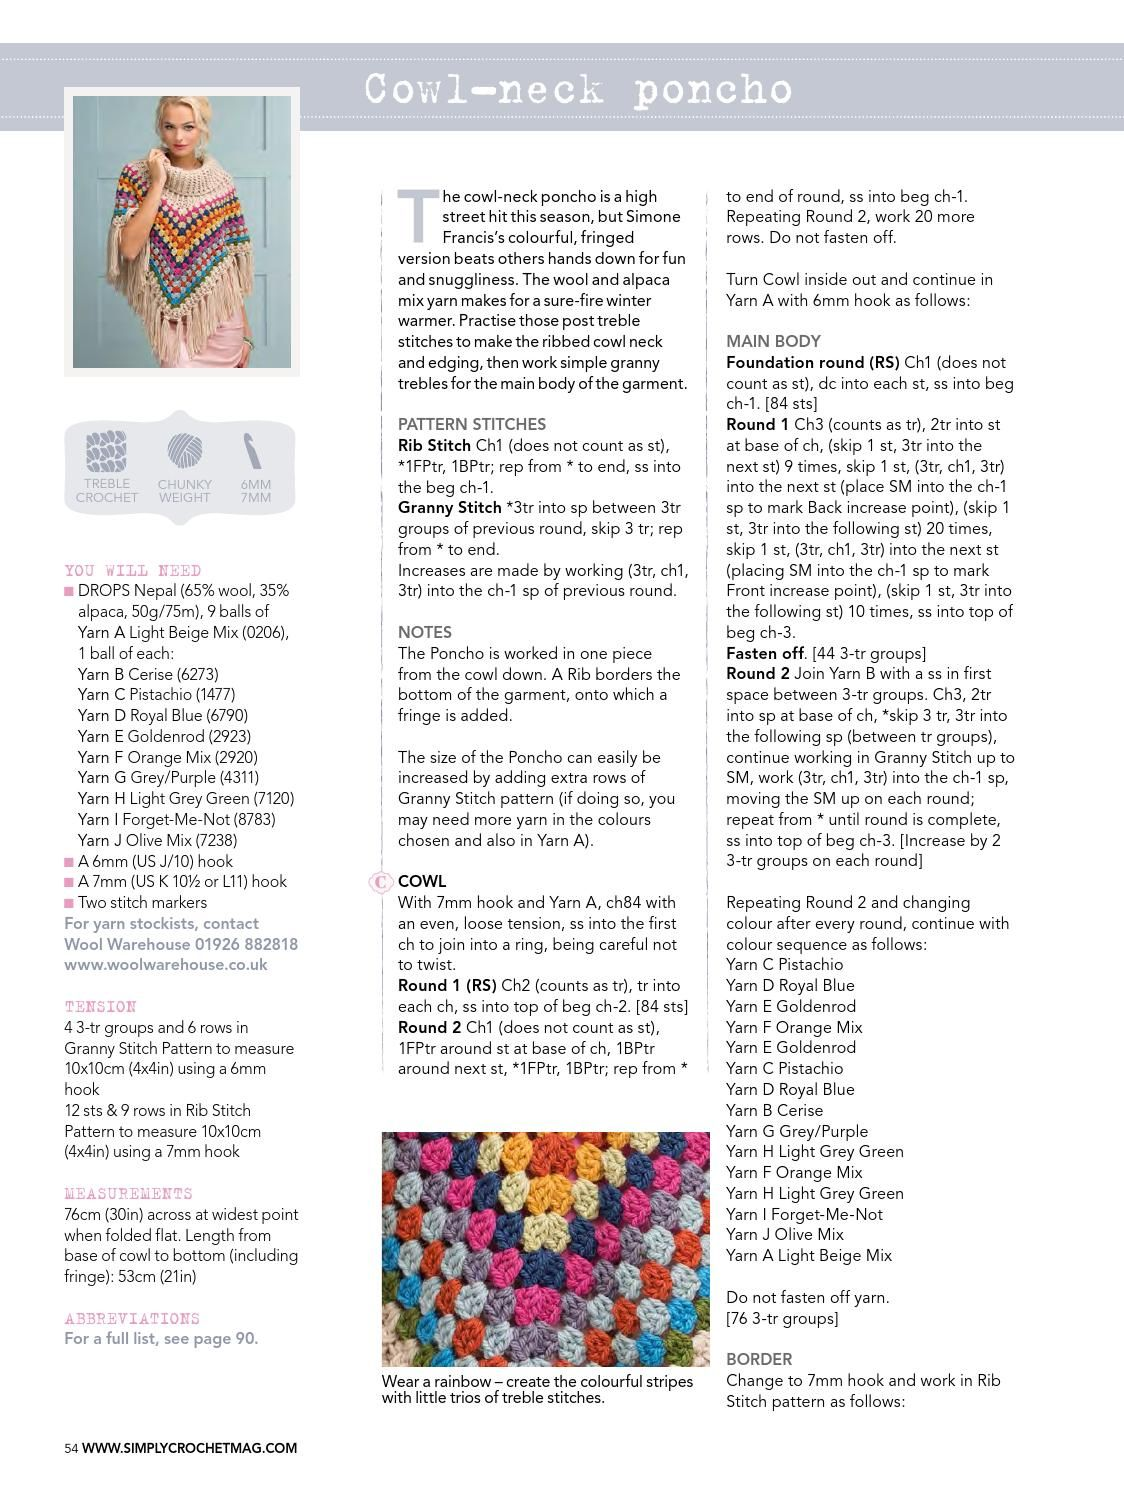 Simply crochet issue 25 december 2014 | CHALS, CUELLOS Y BUFANDAS ...